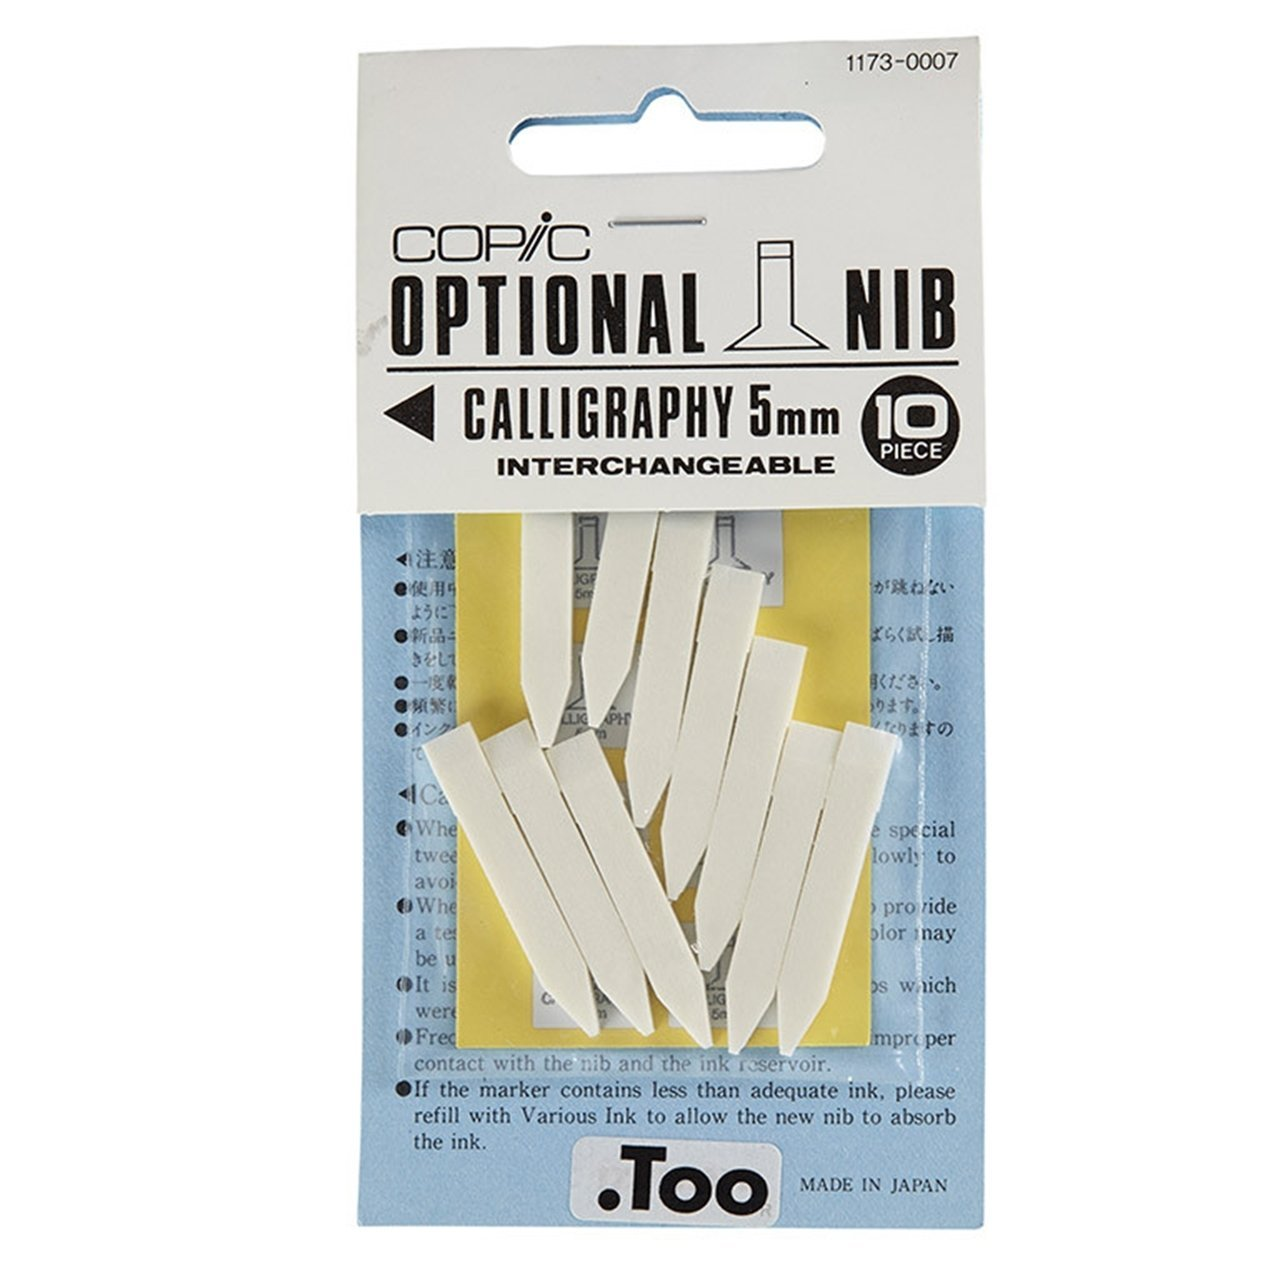 Copic NIbs - Calligraphy 5mm